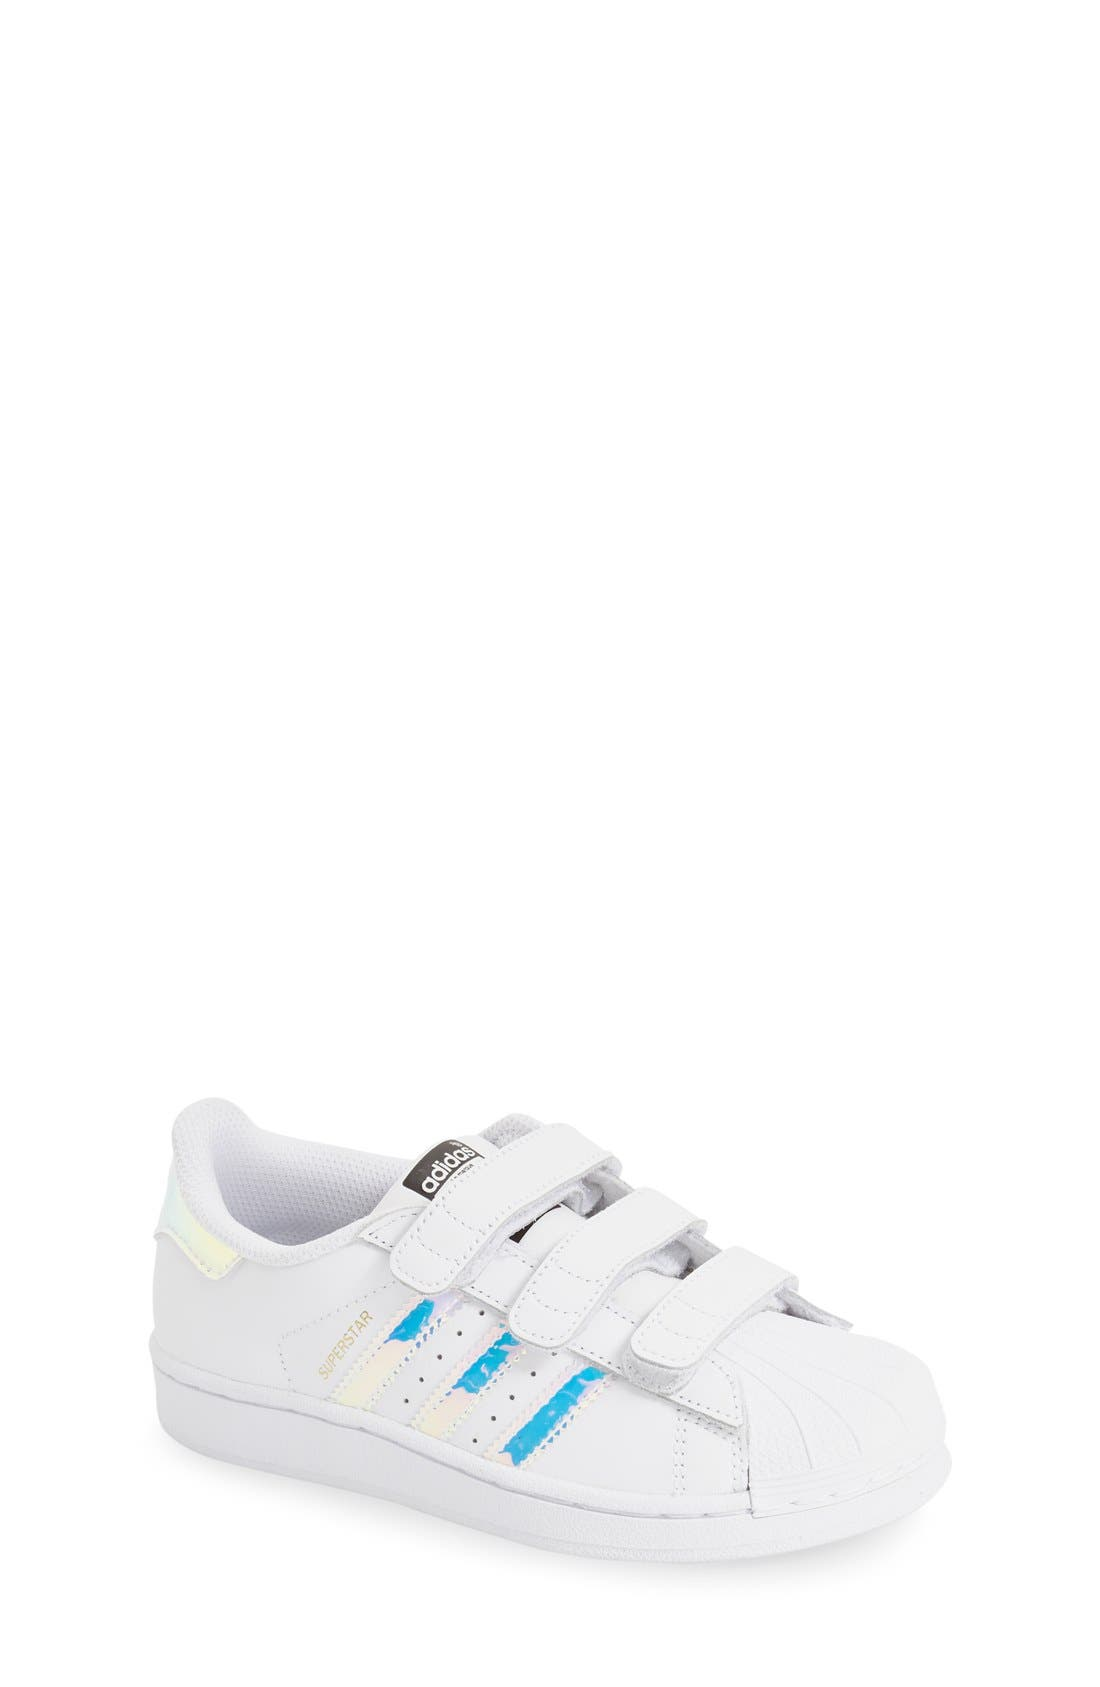 Superstar - Iridescent Sneaker,                             Main thumbnail 1, color,                             SILVER METALLIC/ WHITE